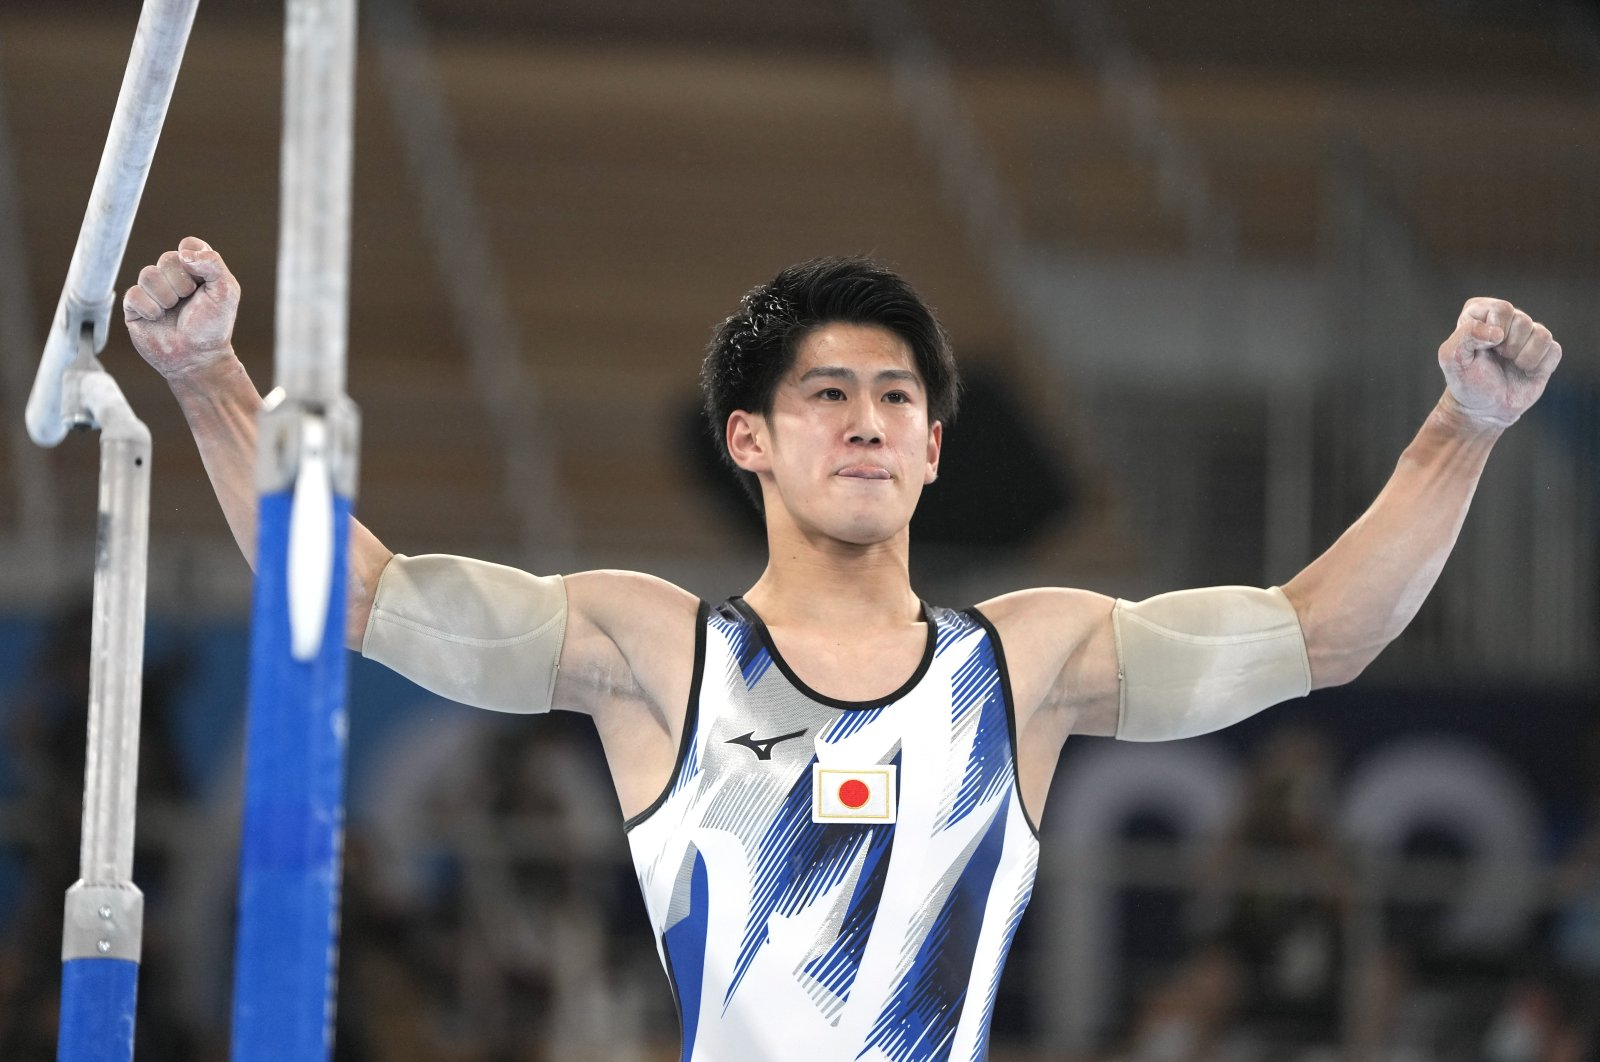 Japan's Daiki Hashimoto finishes on the parallel bars during the artistic gymnastics men's all-around final at the 2020 Summer Olympics, Tokyo, Japan, July 28, 2021. (AP Photo)